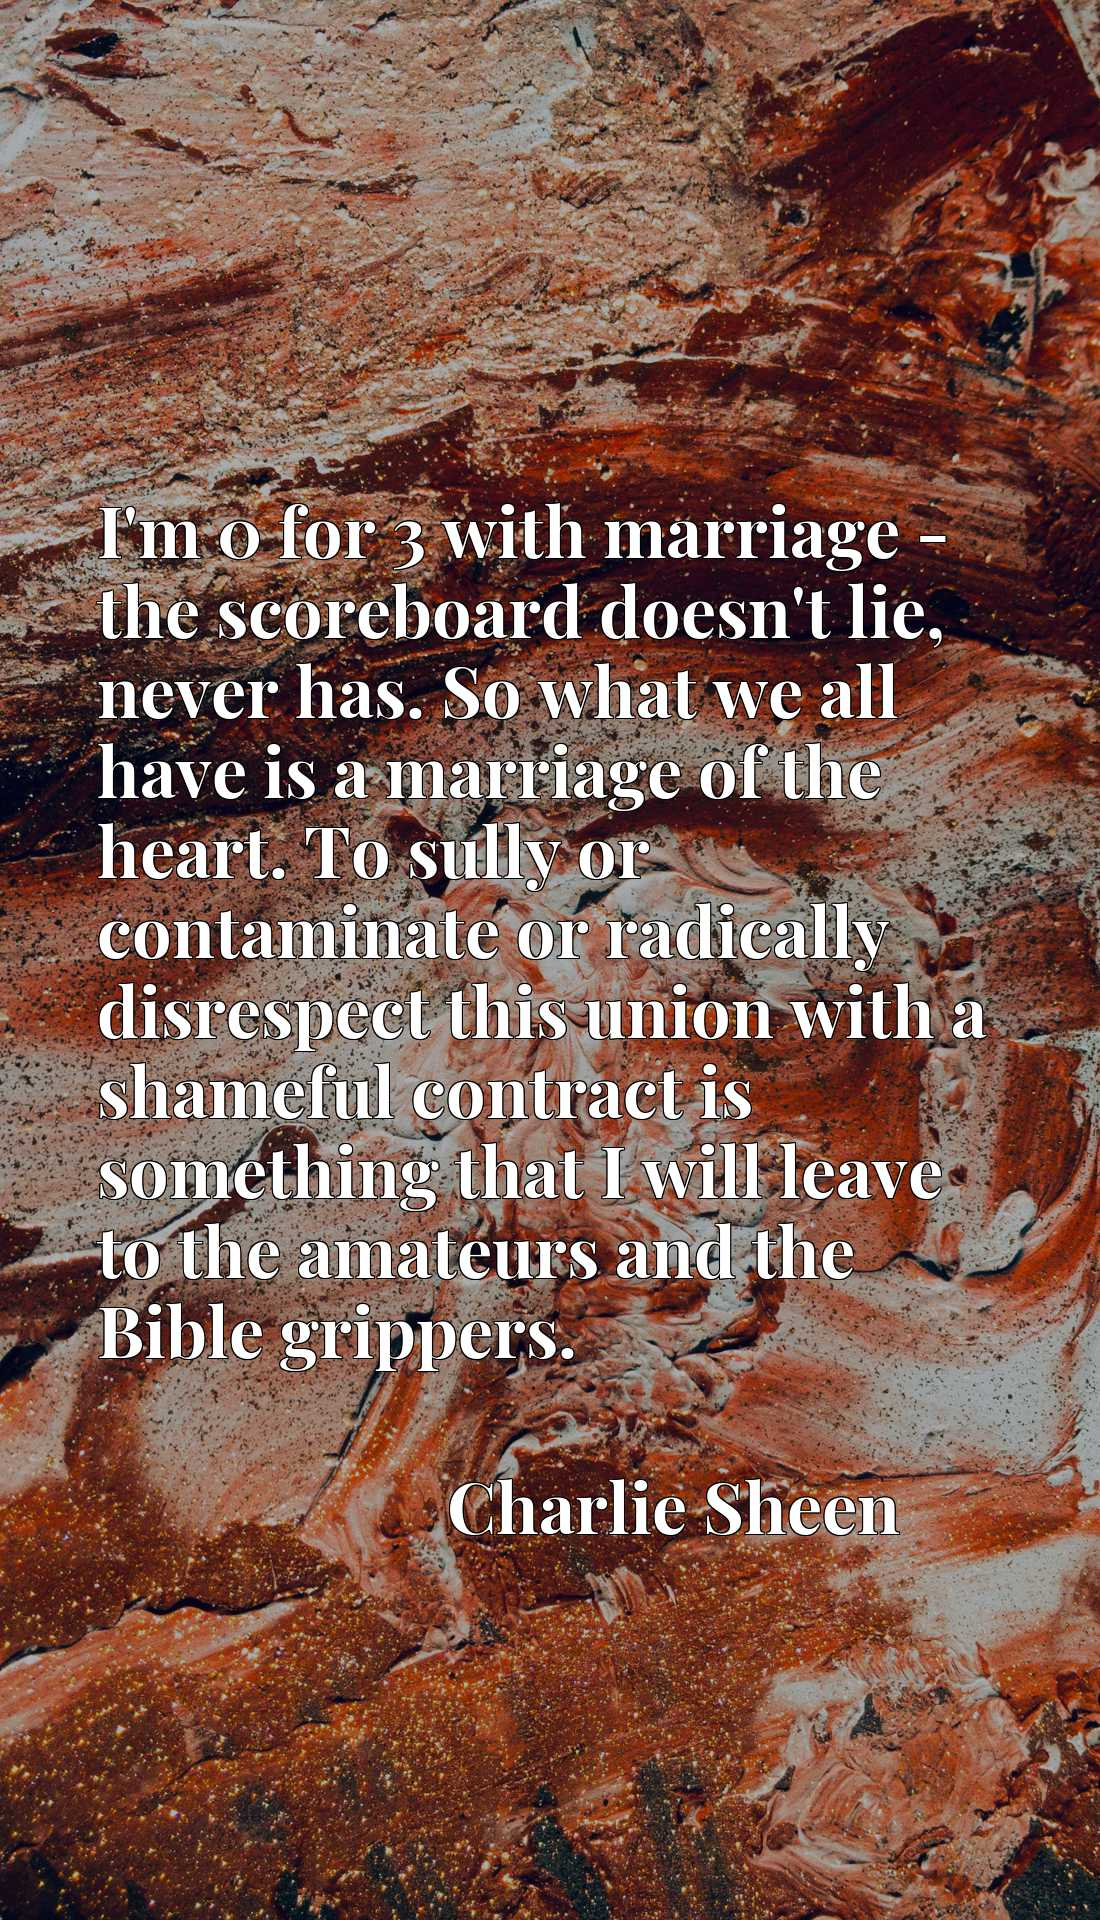 Quote Picture :I'm 0 for 3 with marriage - the scoreboard doesn't lie, never has. So what we all have is a marriage of the heart. To sully or contaminate or radically disrespect this union with a shameful contract is something that I will leave to the amateurs and the Bible grippers.